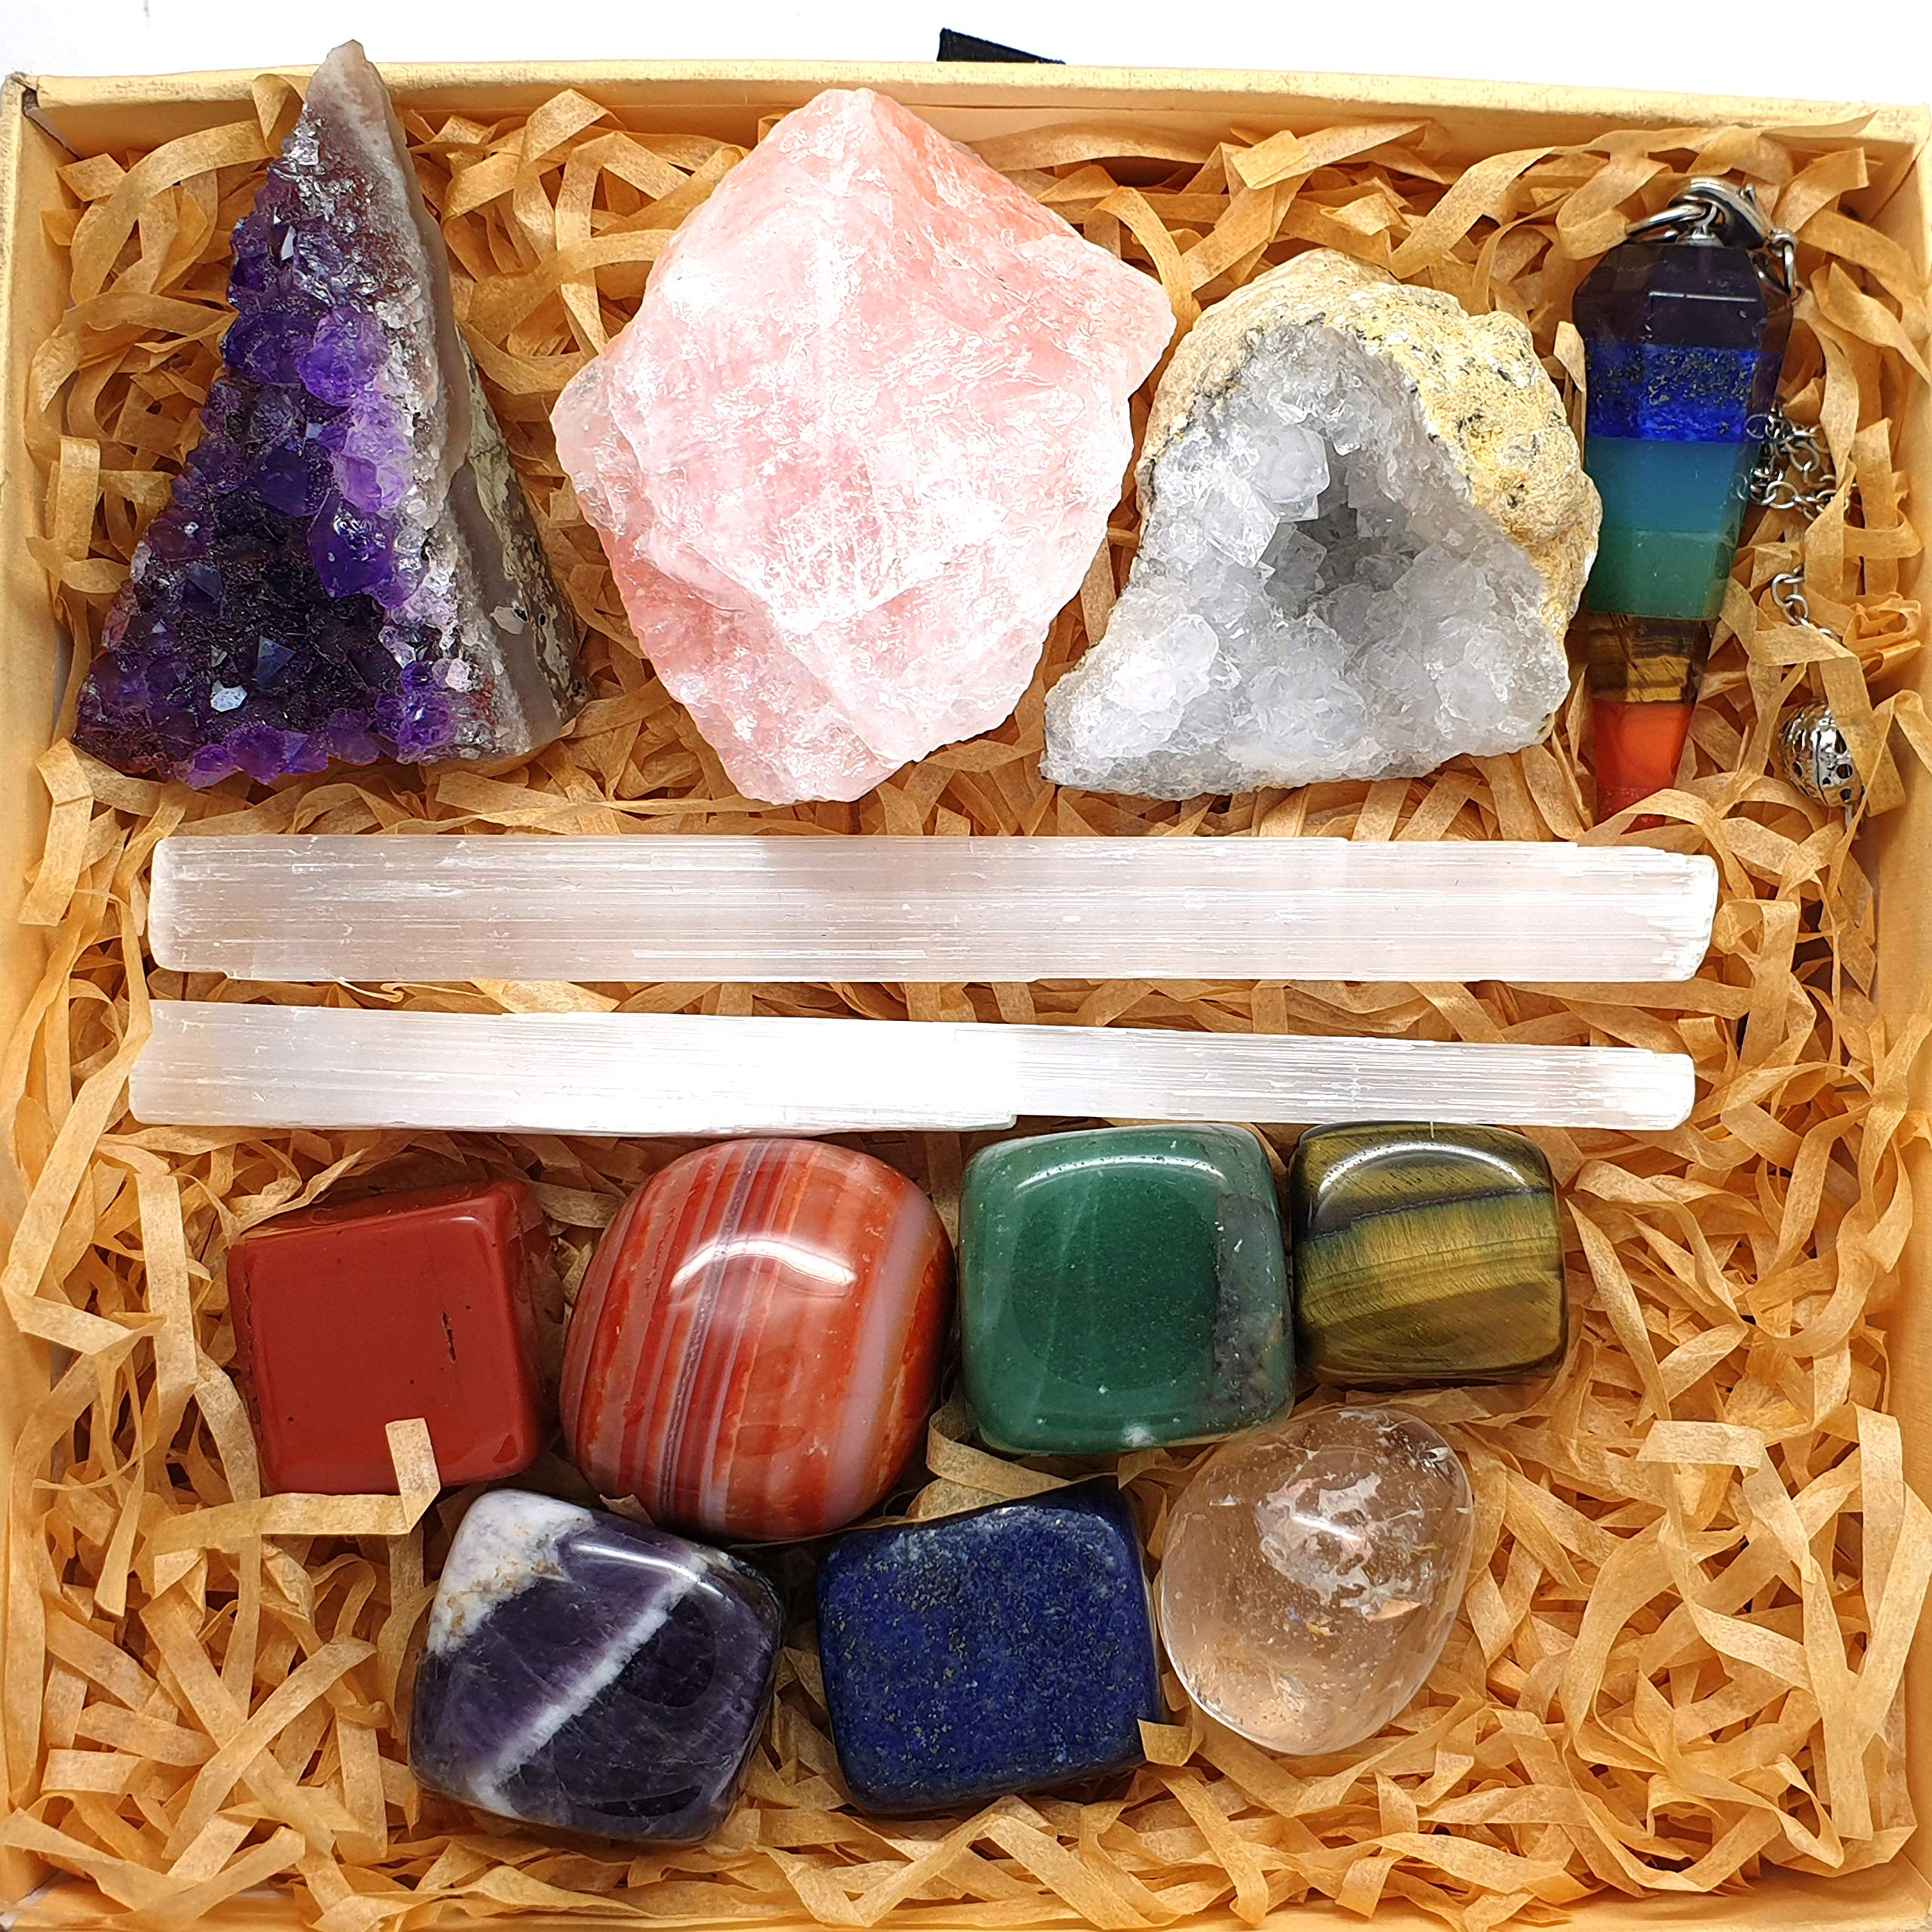 Crystals and Healing Stones Kit with 13 pcs. Healing Crystals, Gemstones and Crystals for Beginners Including Chakra Stones and Chakra Crystals. by Zenluma